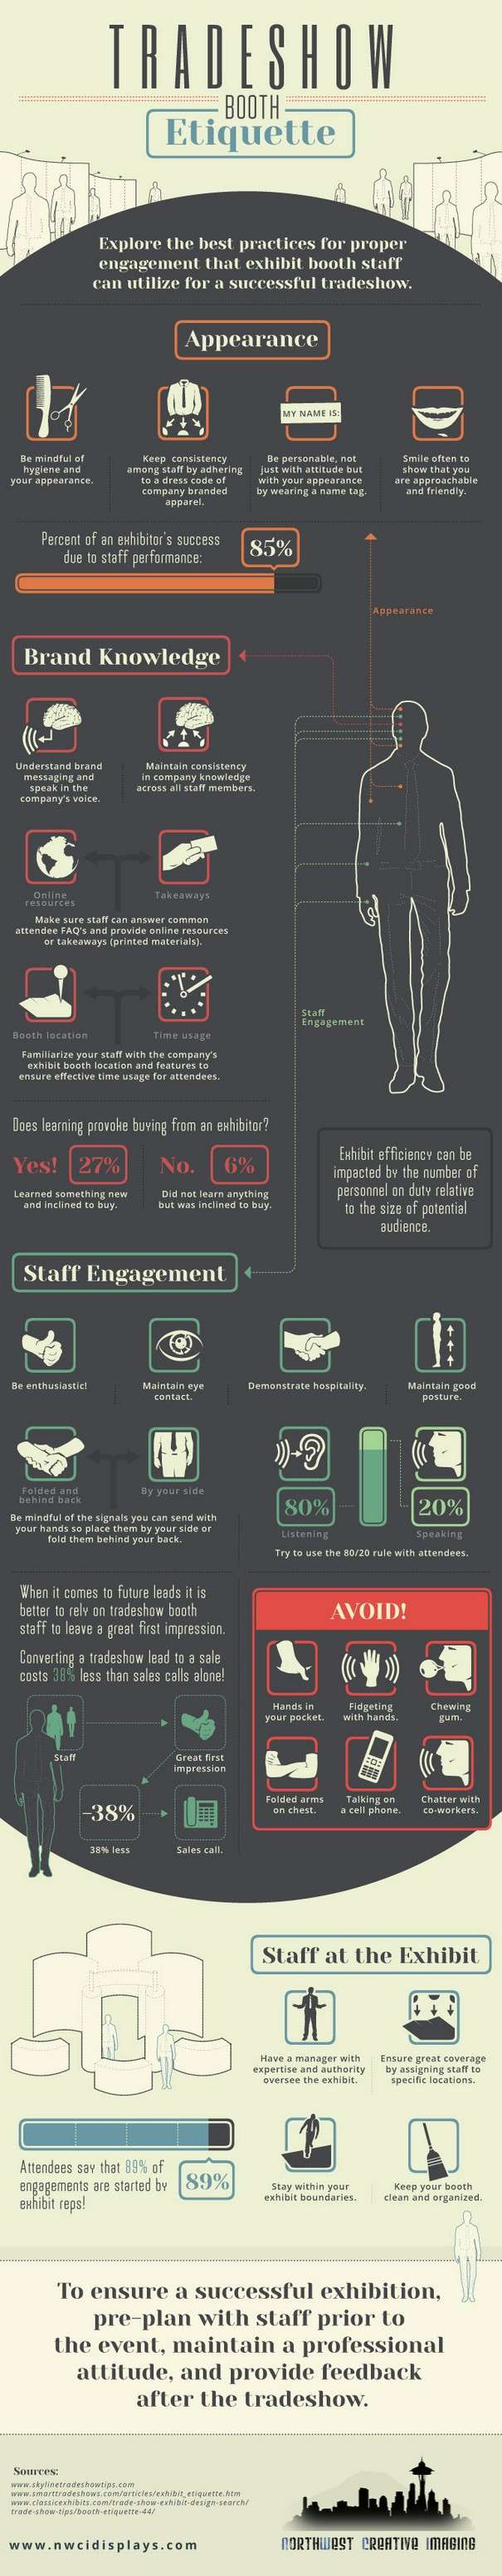 Trade Show Booth Etiquette Infographic